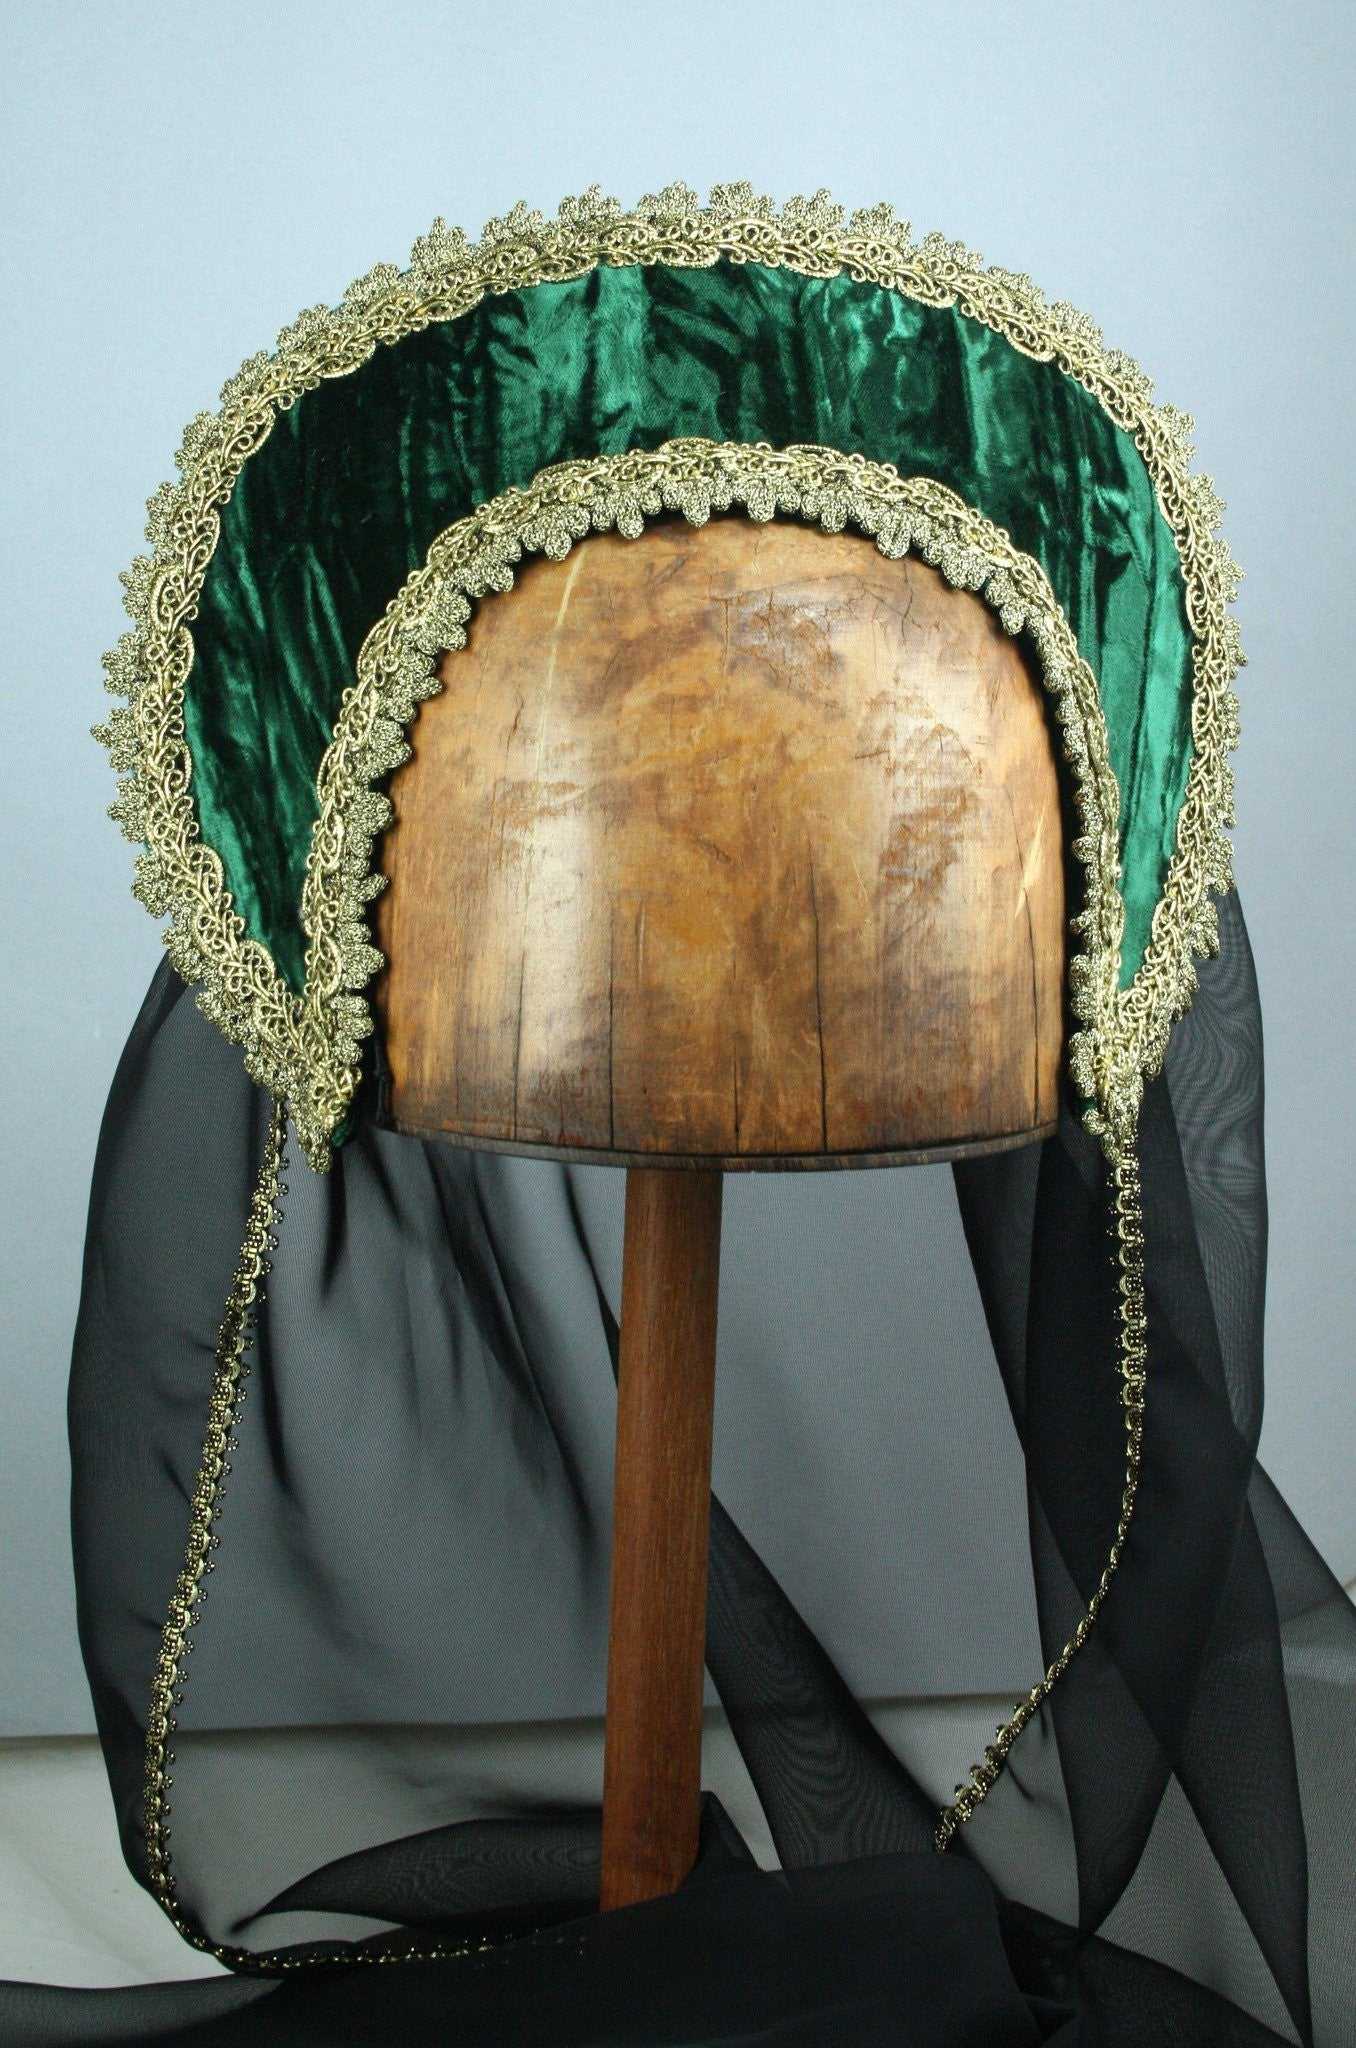 Large French Hood - Green Crushed Velvet / Gold Trim / Black Veil - Tall Toad